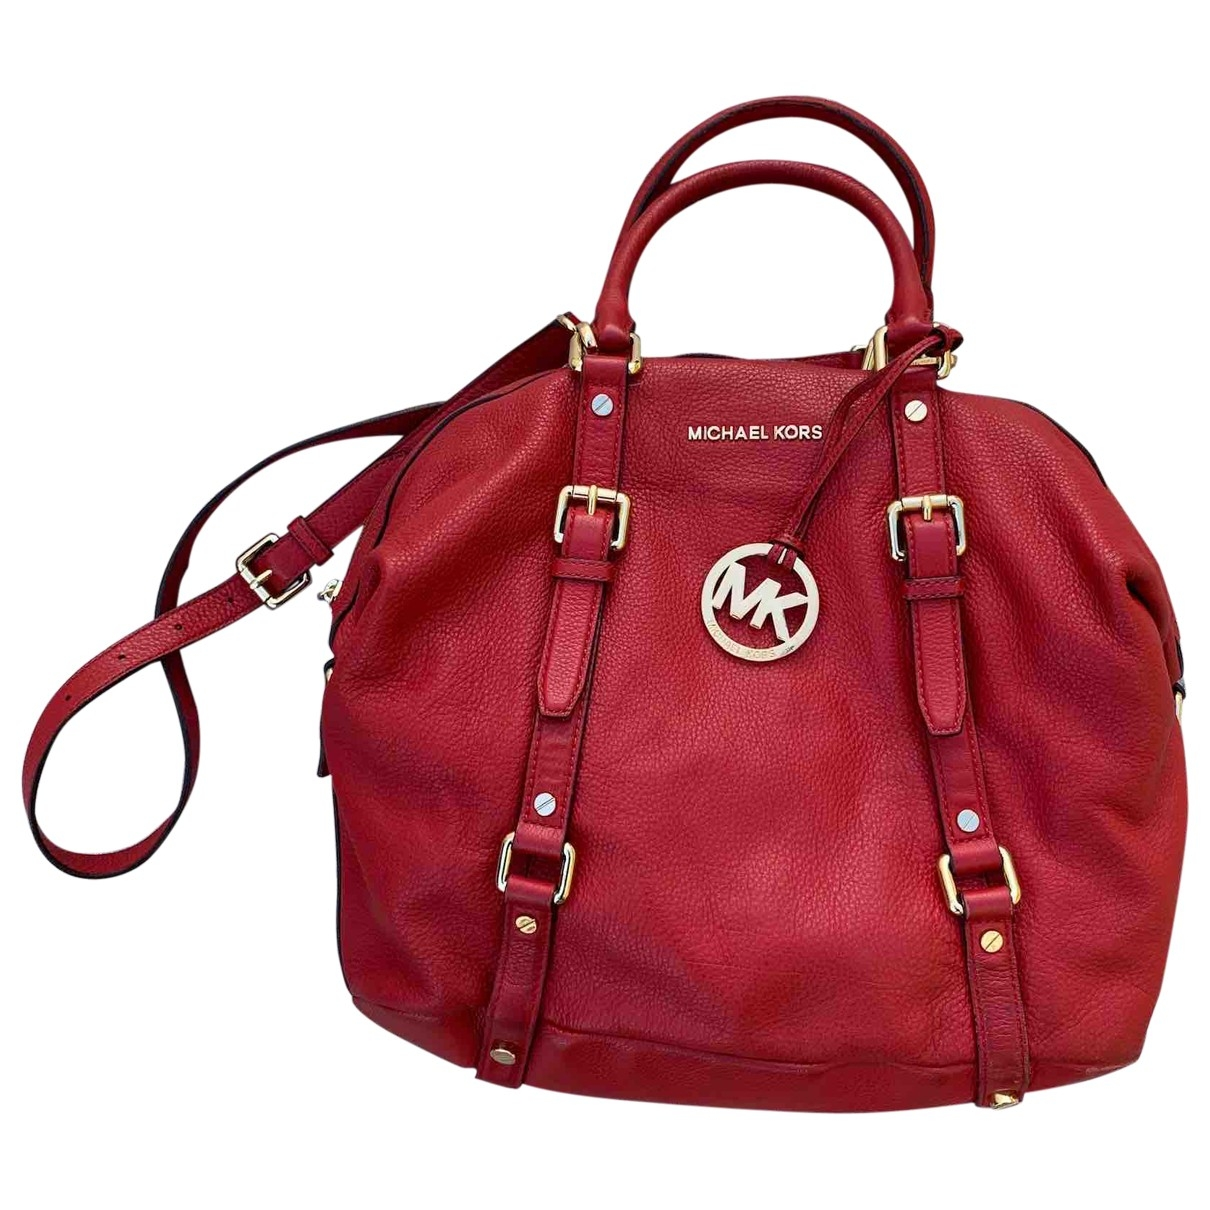 Michael Kors \N Red Leather handbag for Women \N